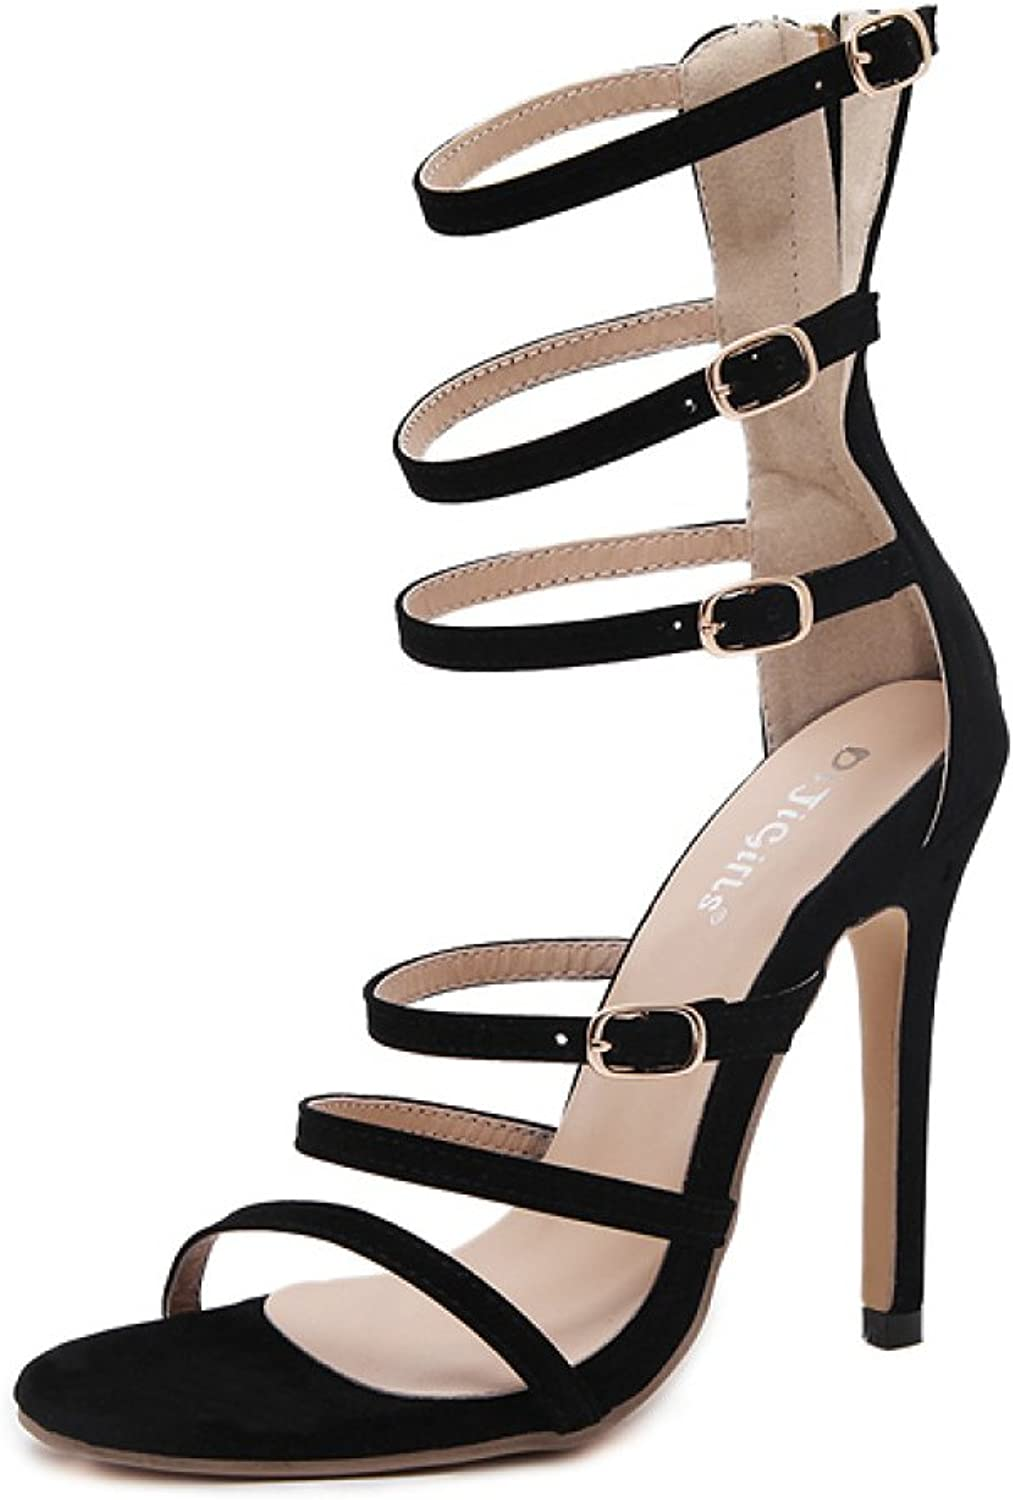 Womens Stiletto High Heels Roman shoes Buckle Sexy Ankle Strap Sandals Ladies Party shoes Wedding Gladiator Strappy Pumps,Black-EU36 230